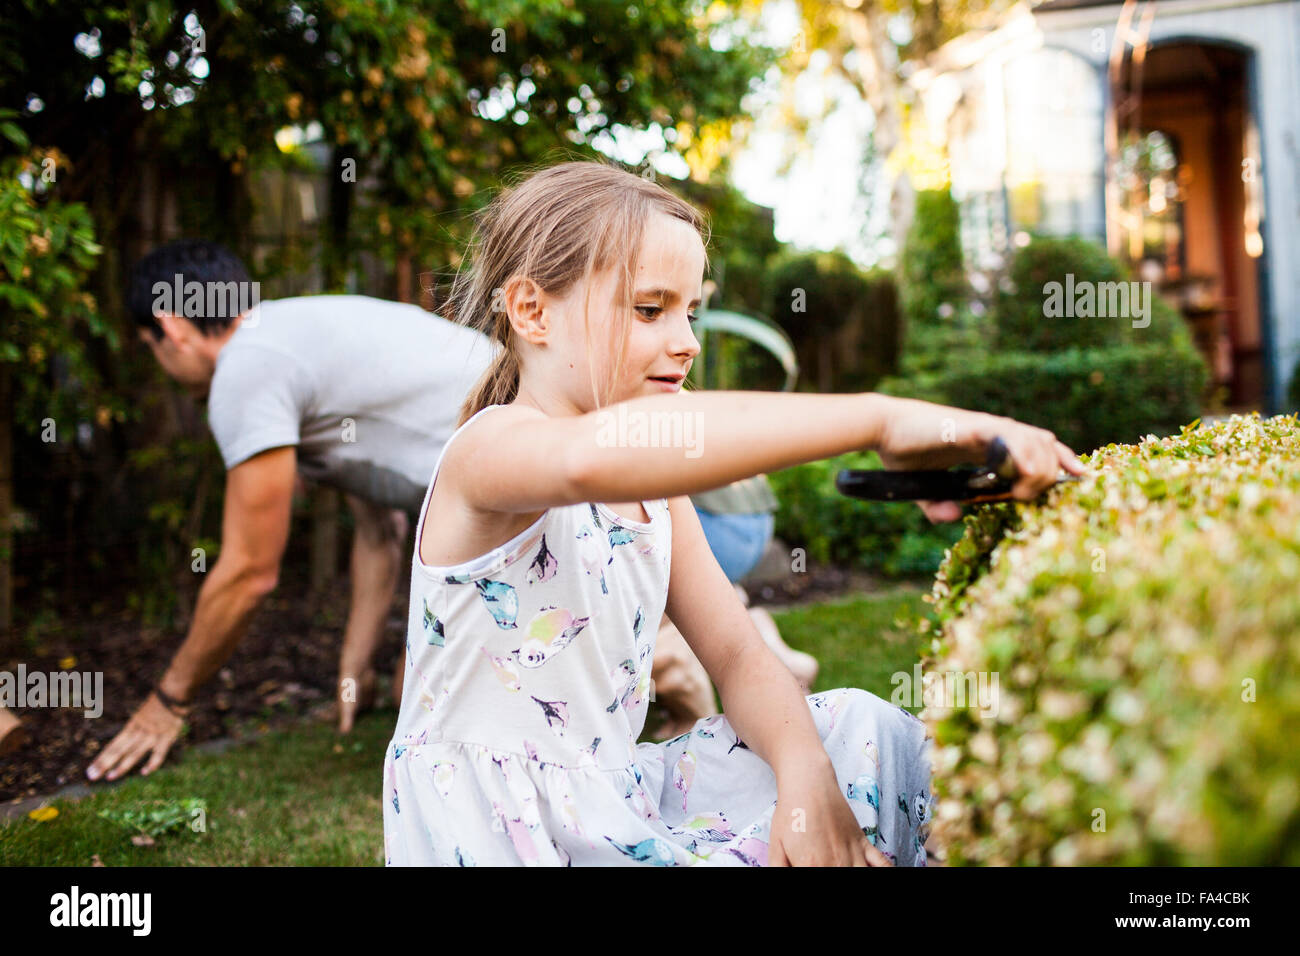 Girl pruning plant with father gardening in background - Stock Image